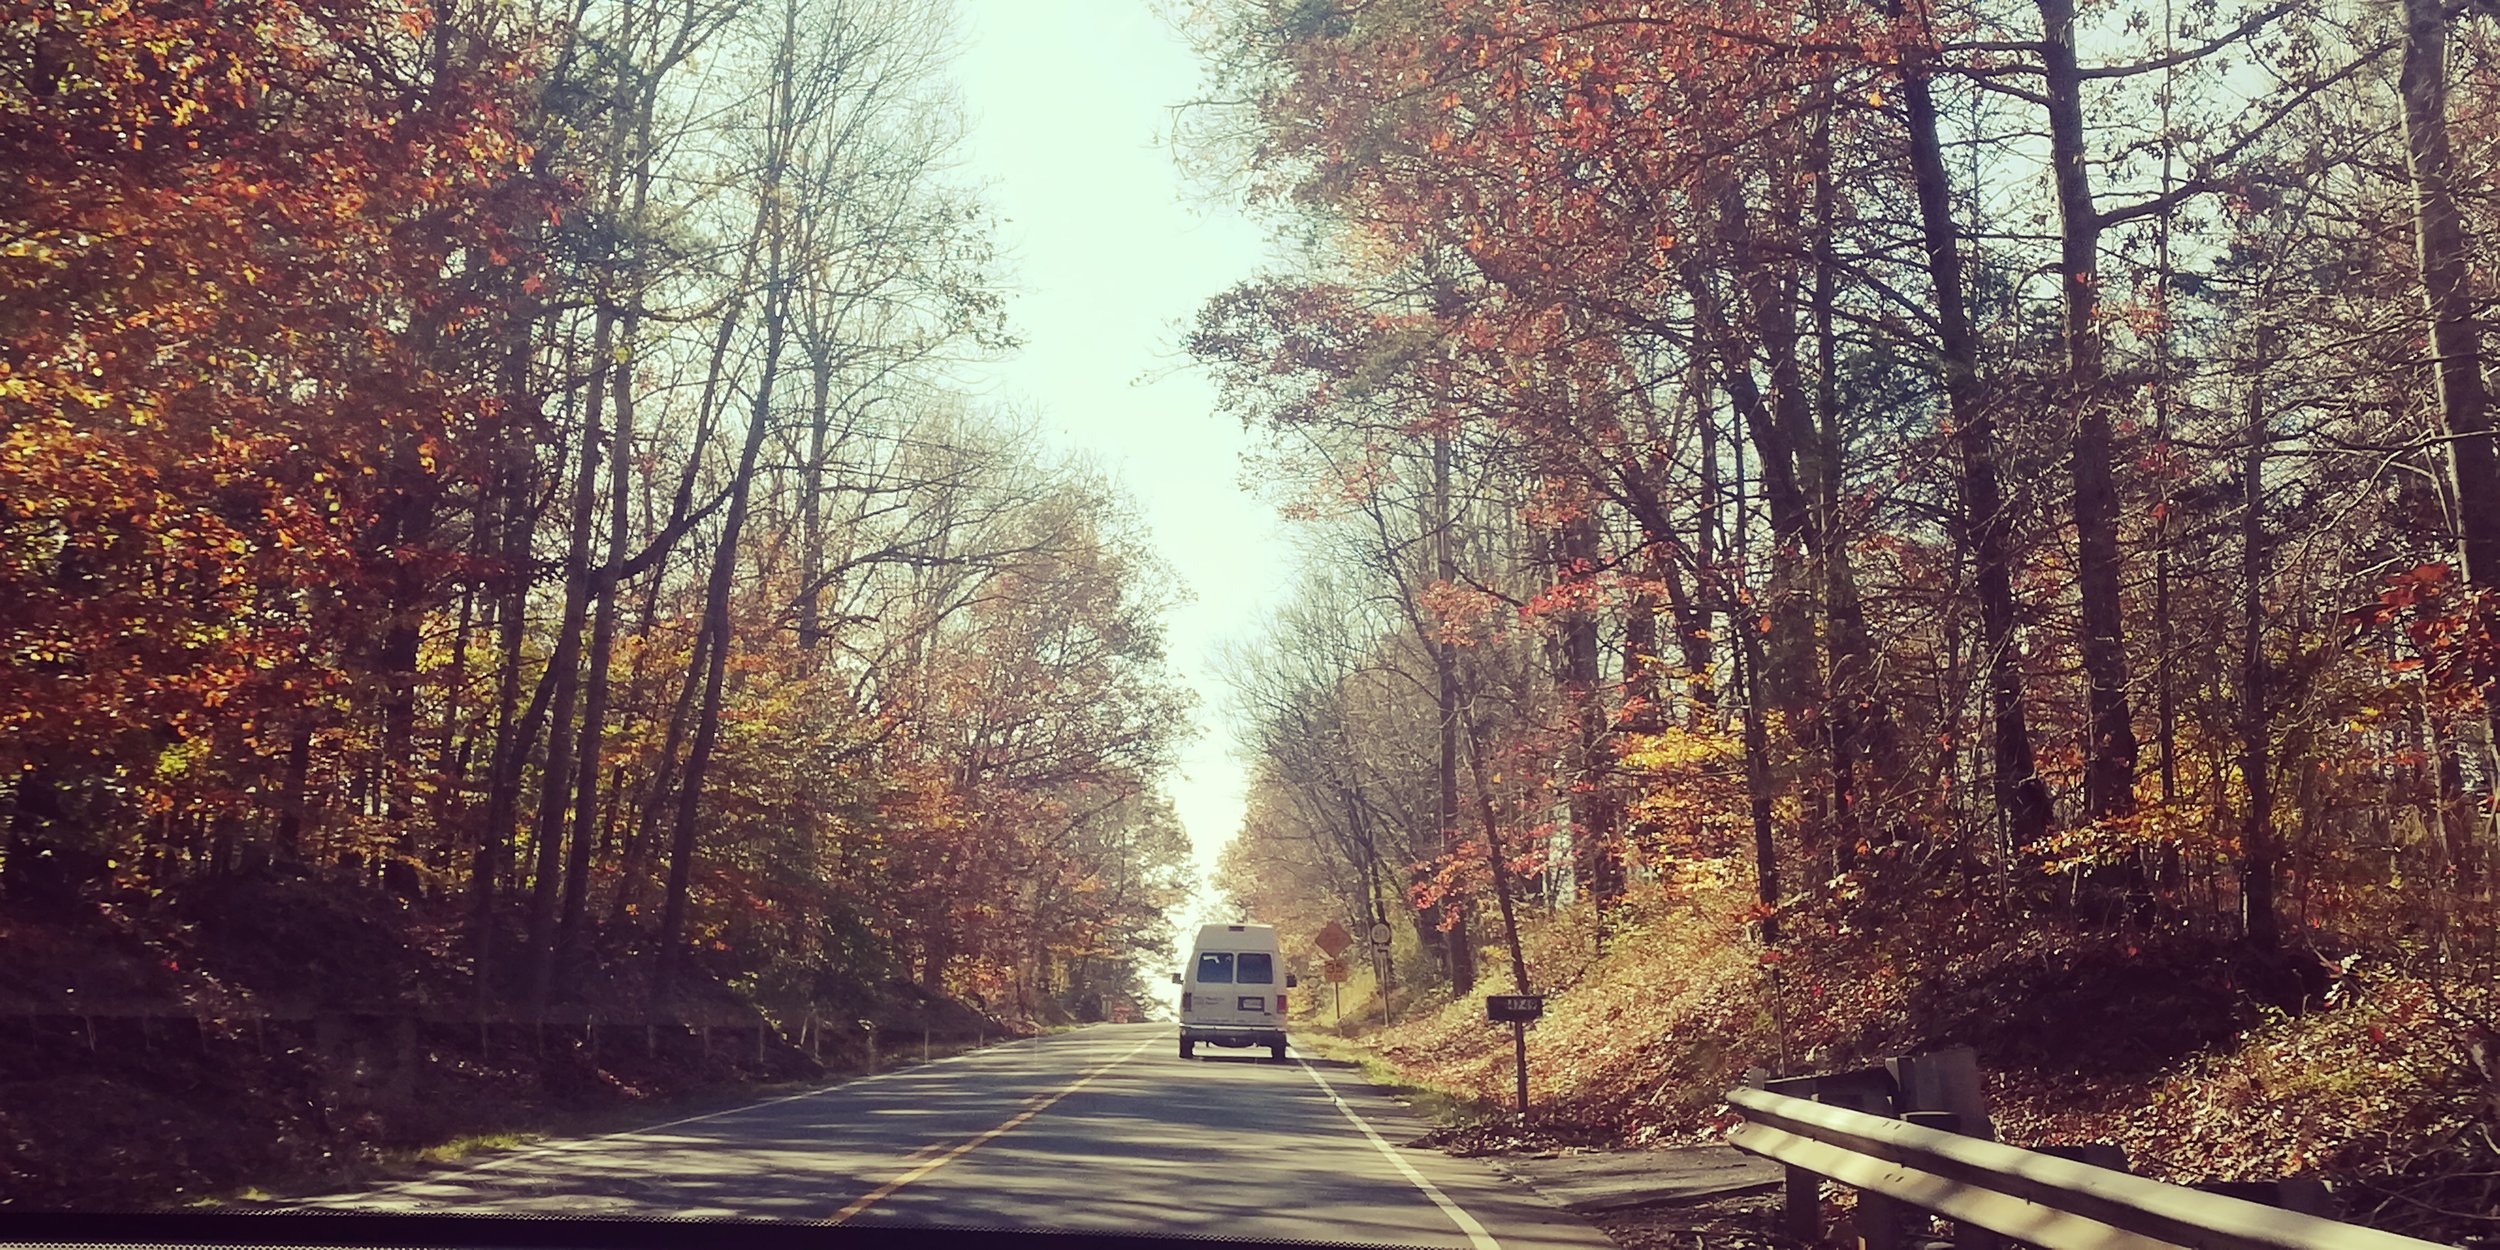 Traveling along a secondary road viewing the last of the fall foliage.